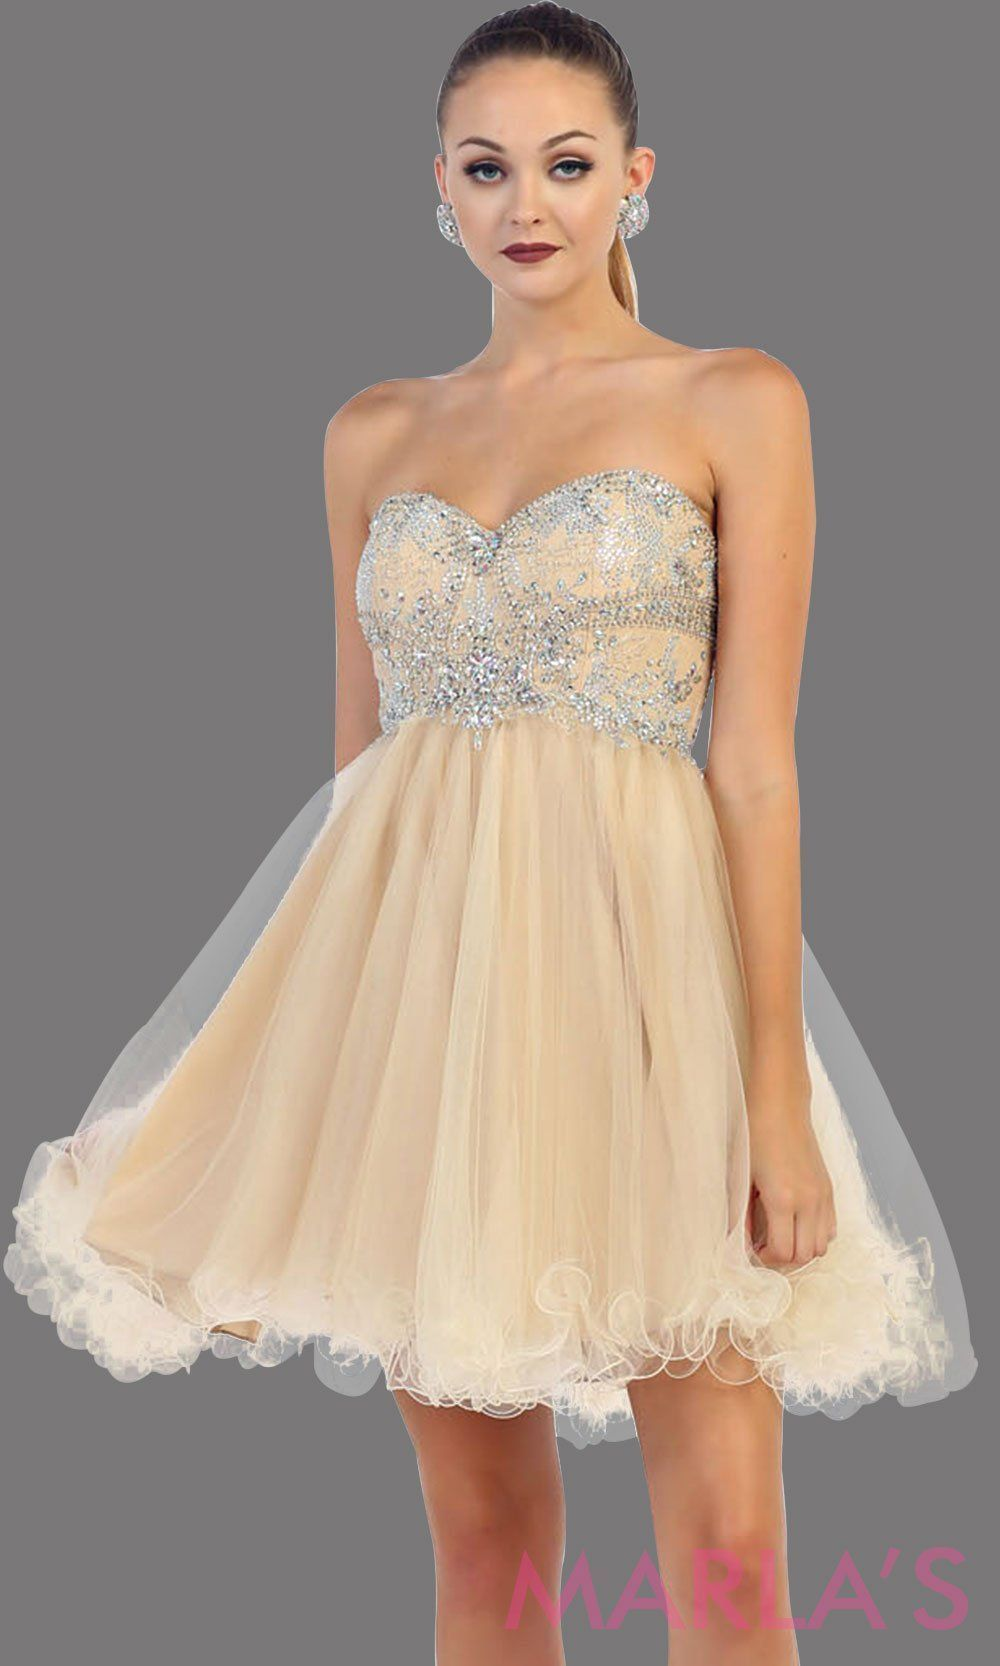 b0253ee8ac475 Short strapless puffy champagne dress. This short light gold grade 8  graduation dress has sequin bodice and corset back. This is perfect for  homecoming, ...